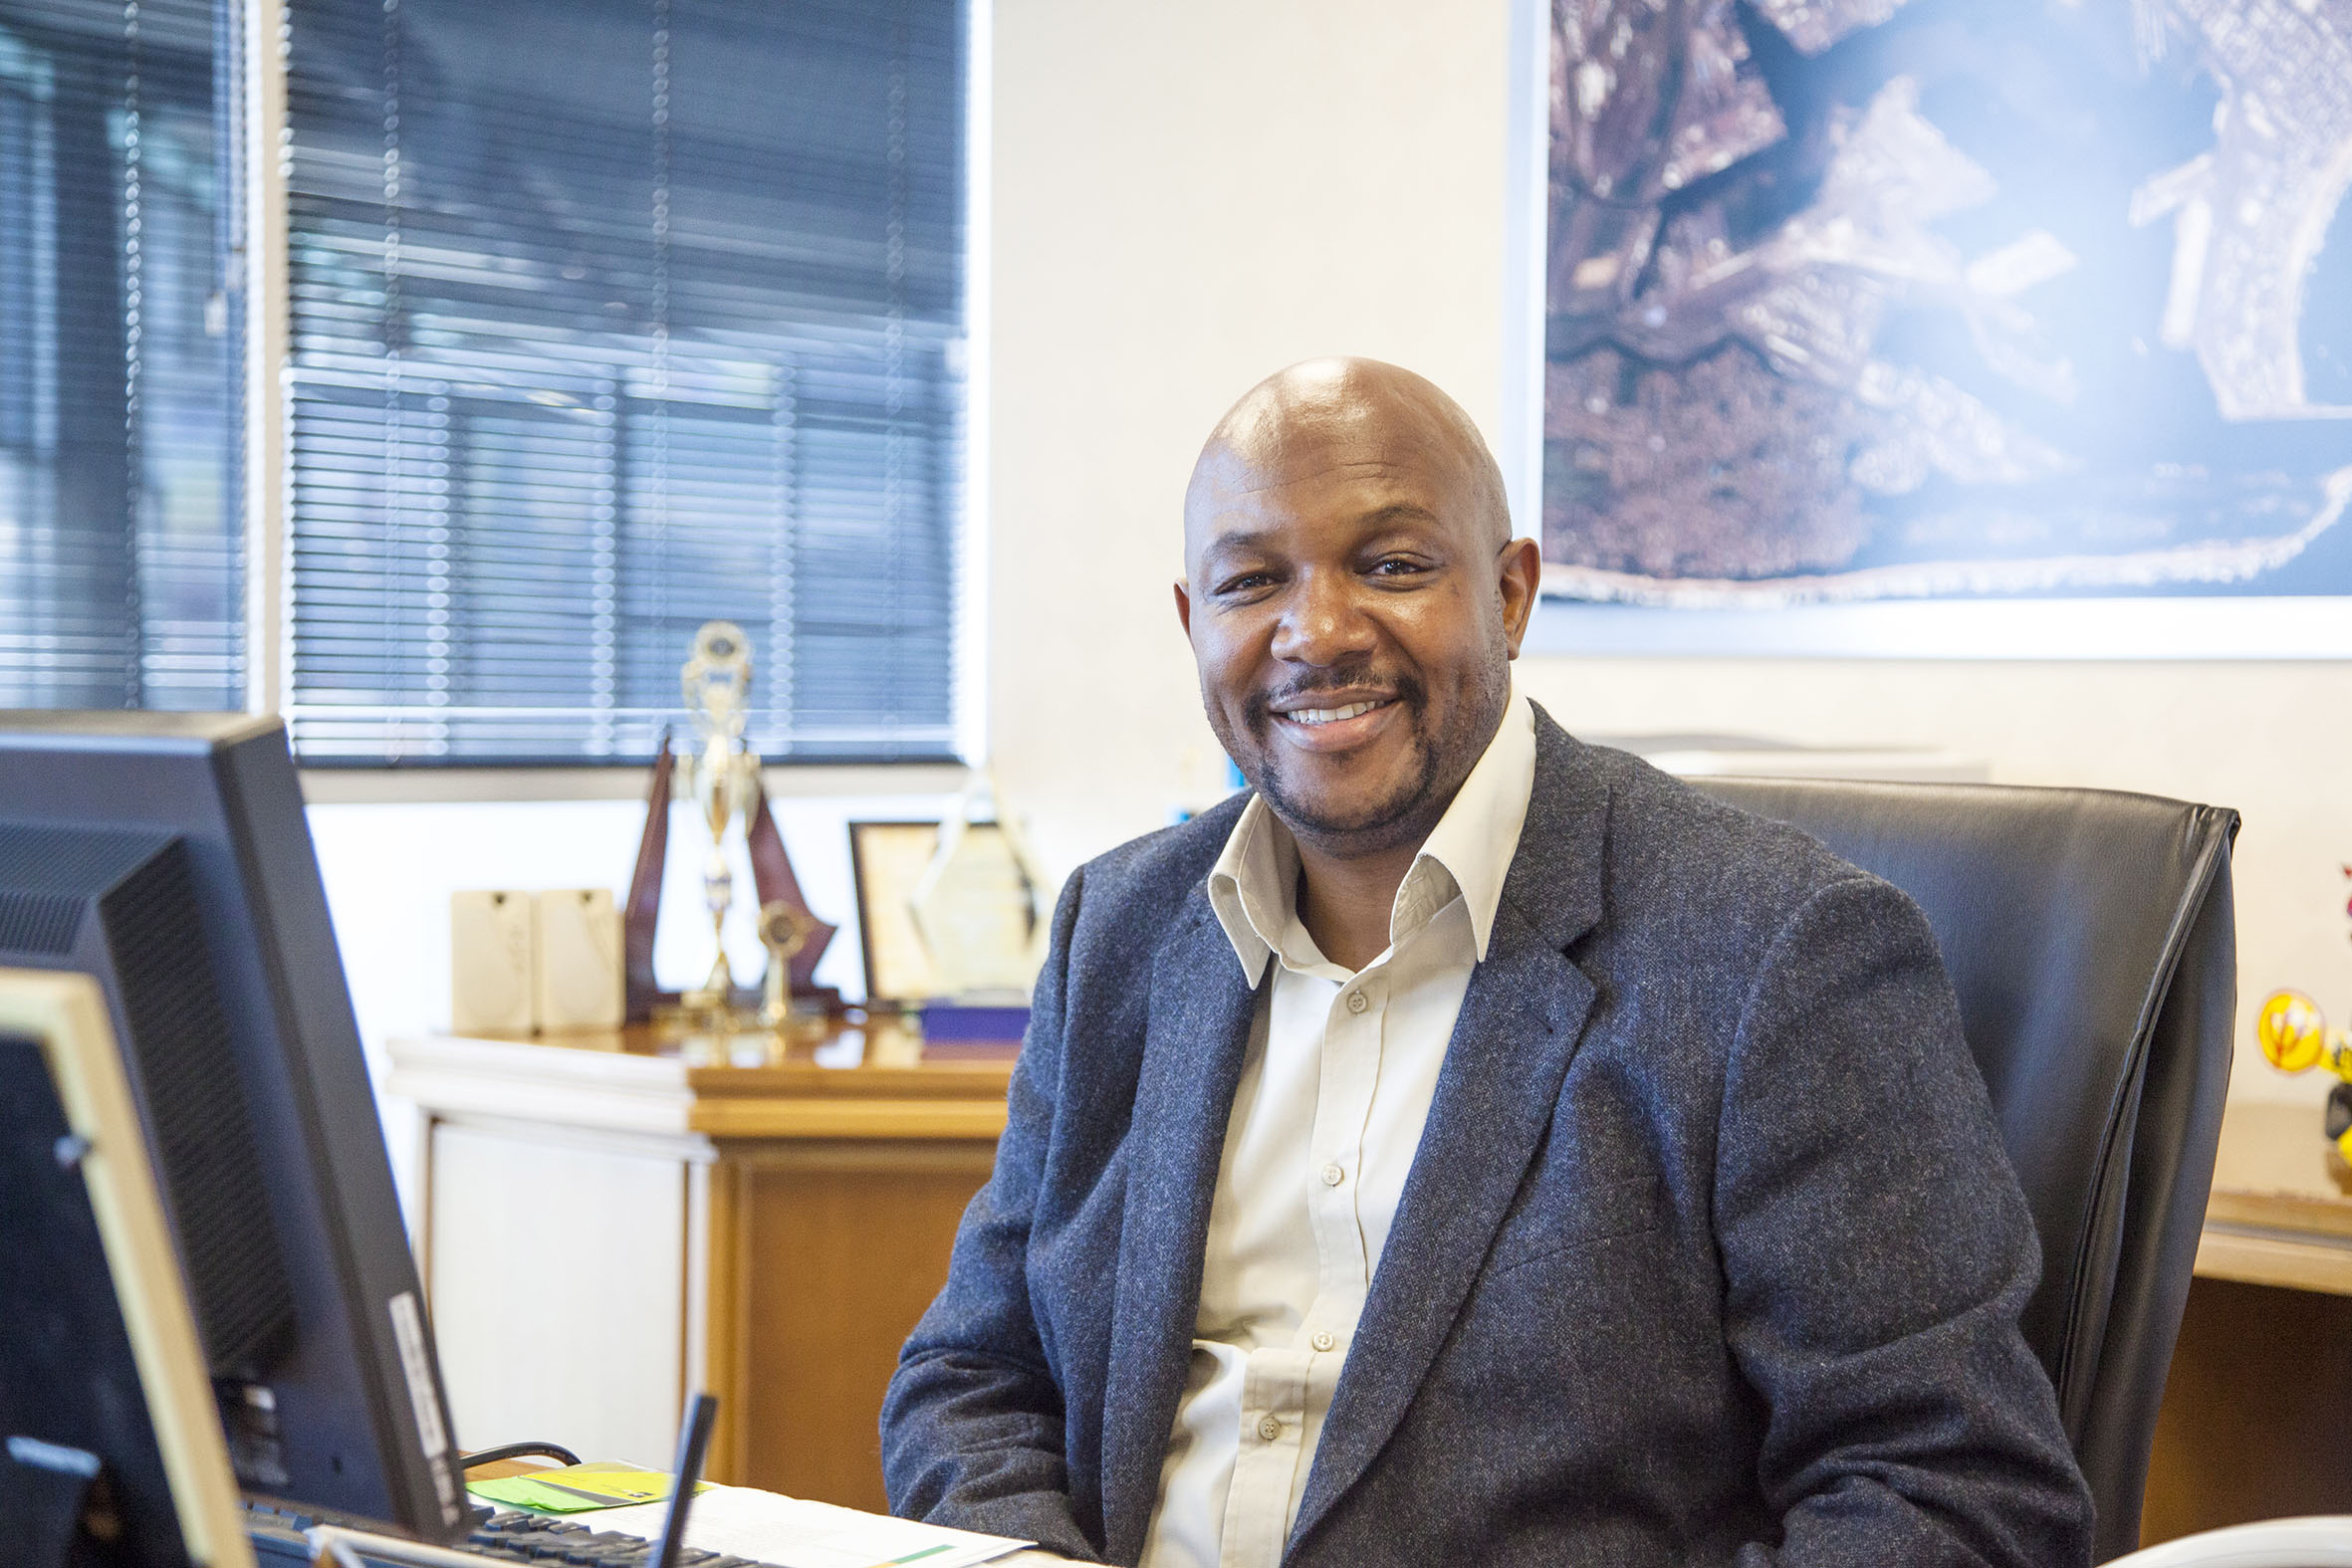 Port of Durban general manager, Moshe Motlohi, featured in Africa PORTS & SHIPS maritime news